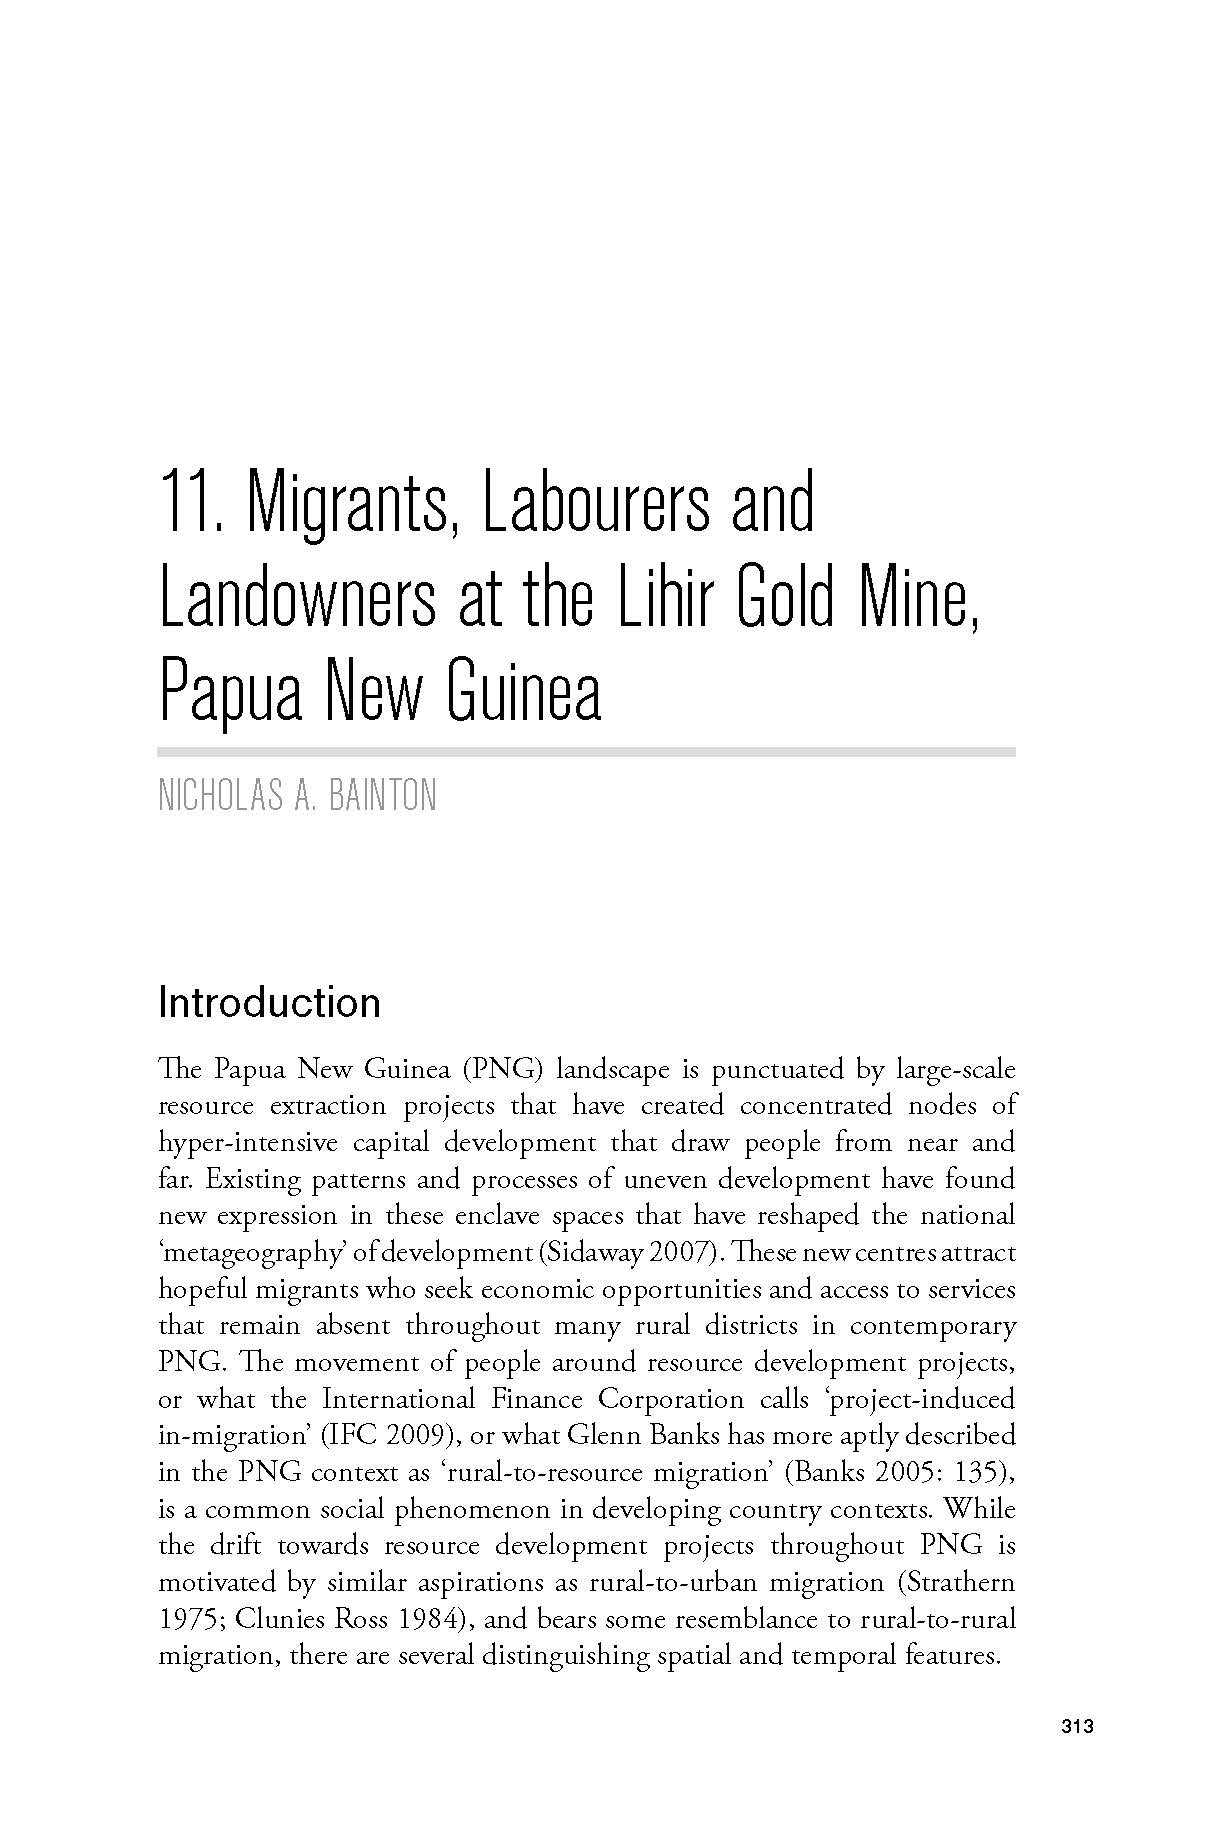 Migrants, labourers and landowners at the Lihir gold mine, Papua New Guinea